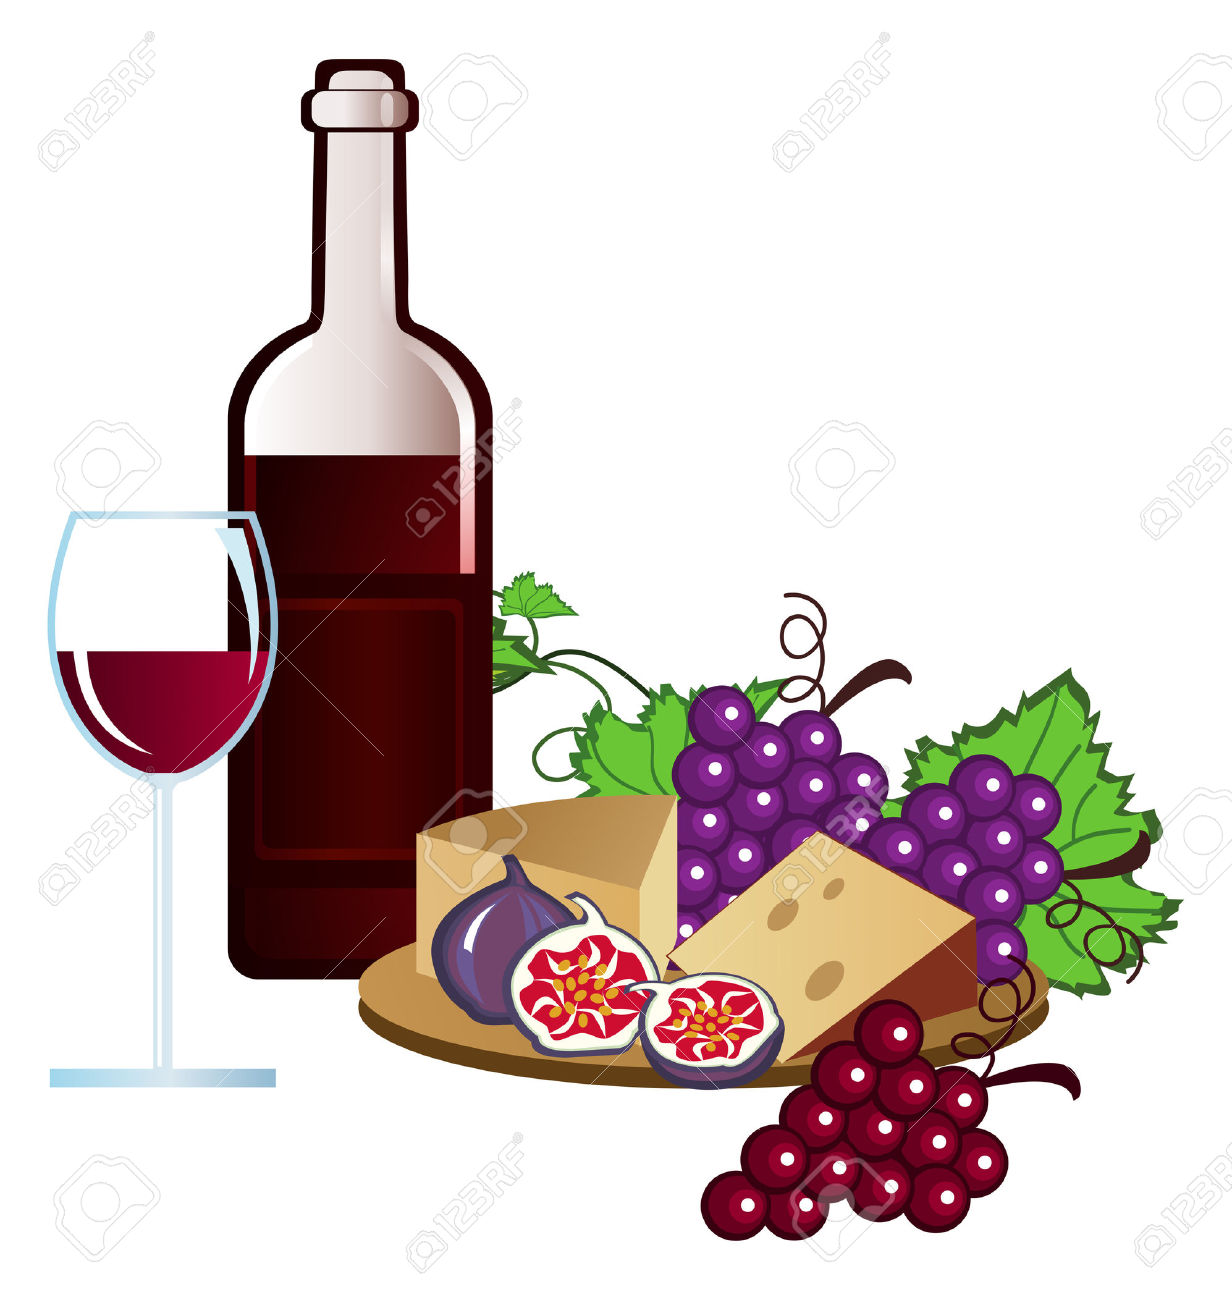 Clip-arts of wine, fruits and .-Clip-arts of wine, fruits and .-16